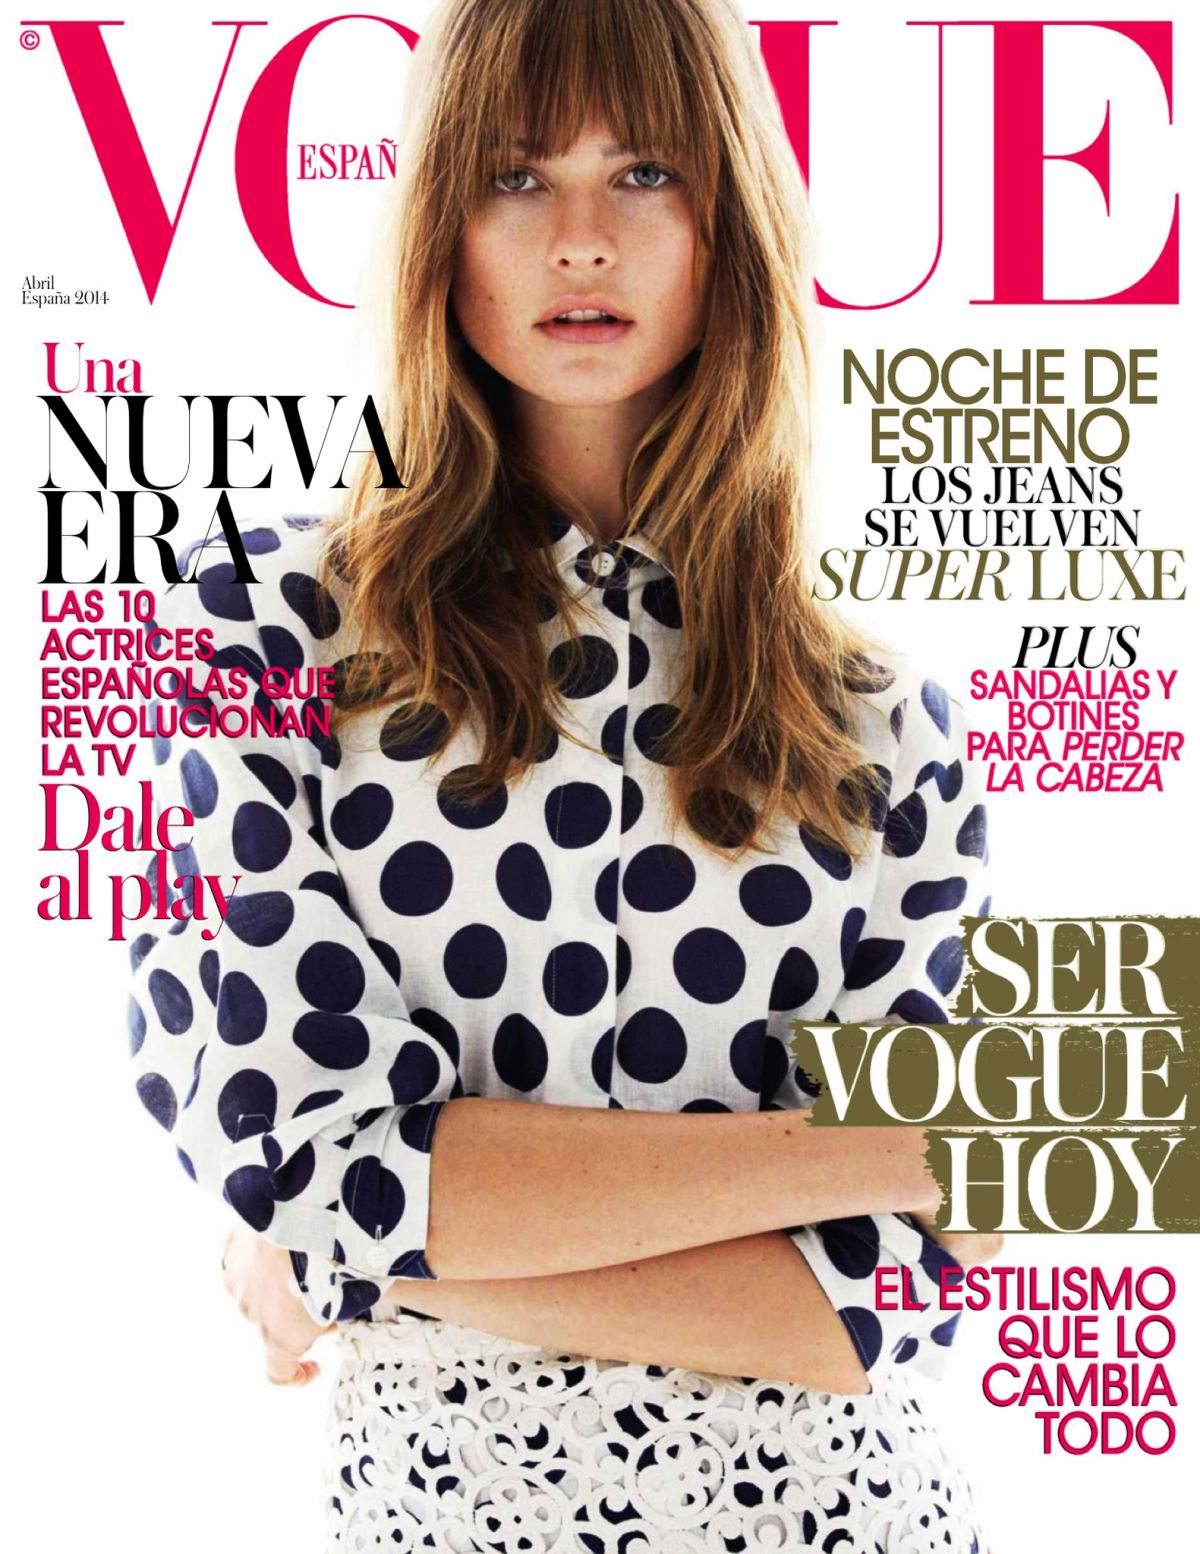 BEHATI PRINSLOO in Vogue Magazine, Spain April 2014 Issue